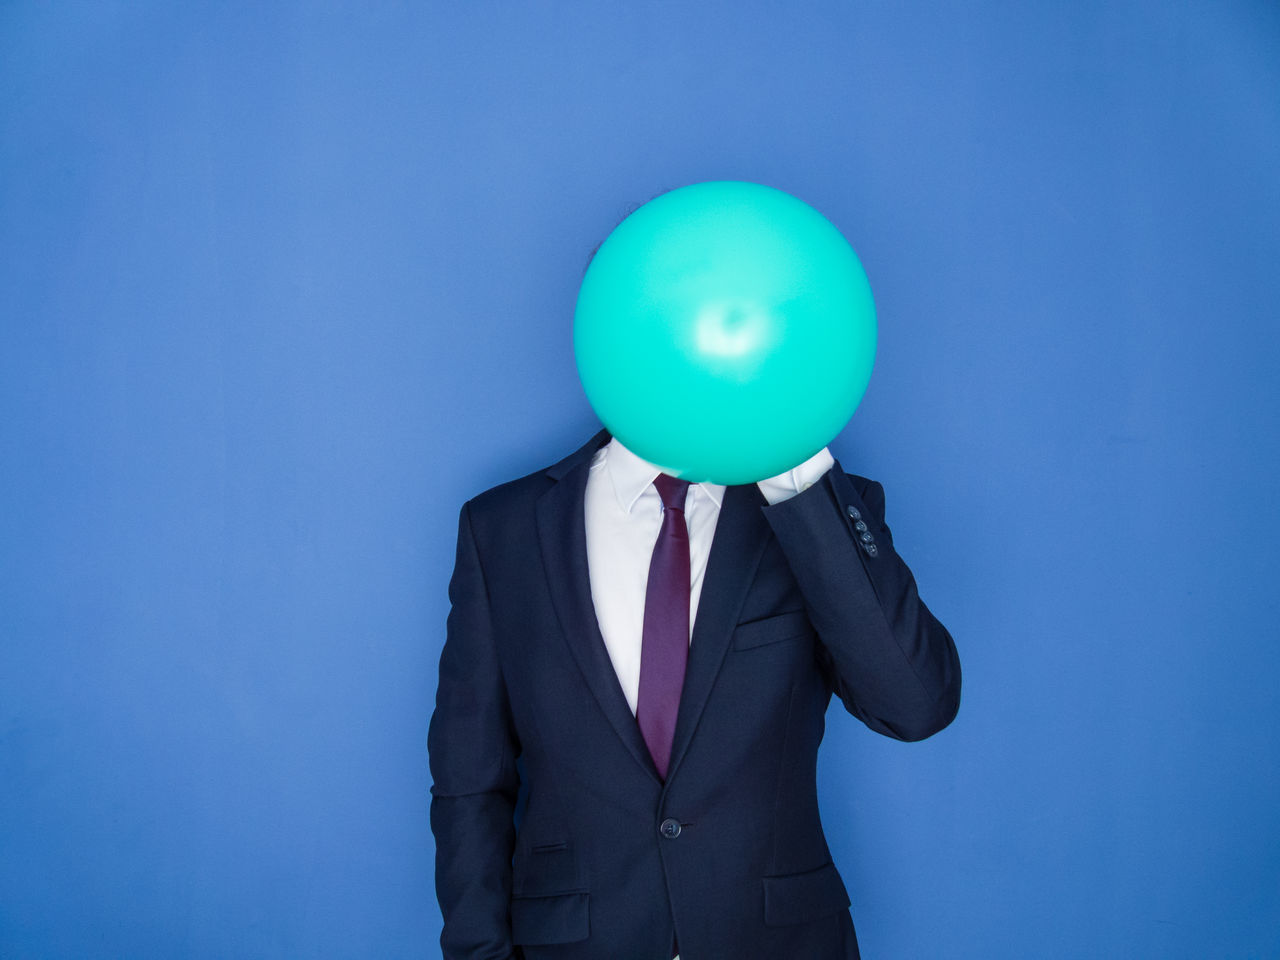 Young handsome bearded man in a suit blowing up a green balloon front view. Blue background. Balloon Beard Blowing Up Balloon Blue Business Business Finance And Industry Businessman Carefree Confidence  Economy Elegant Flower Helium Balloon Holding Man Manager One Person Party Person Relax Self Portrait Suit Well-dressed Young Adult